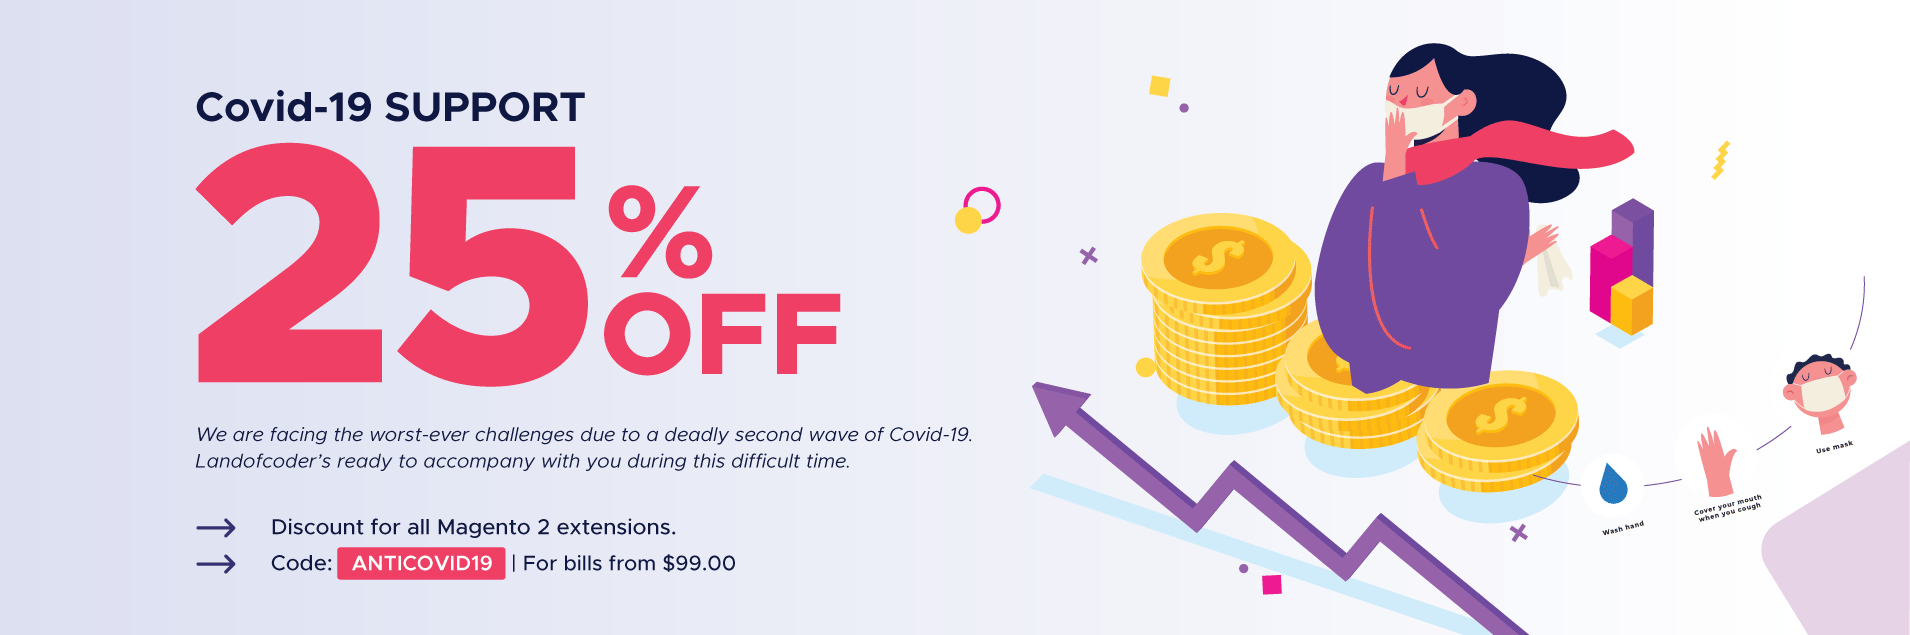 COVID sales off 25 % for all extensions